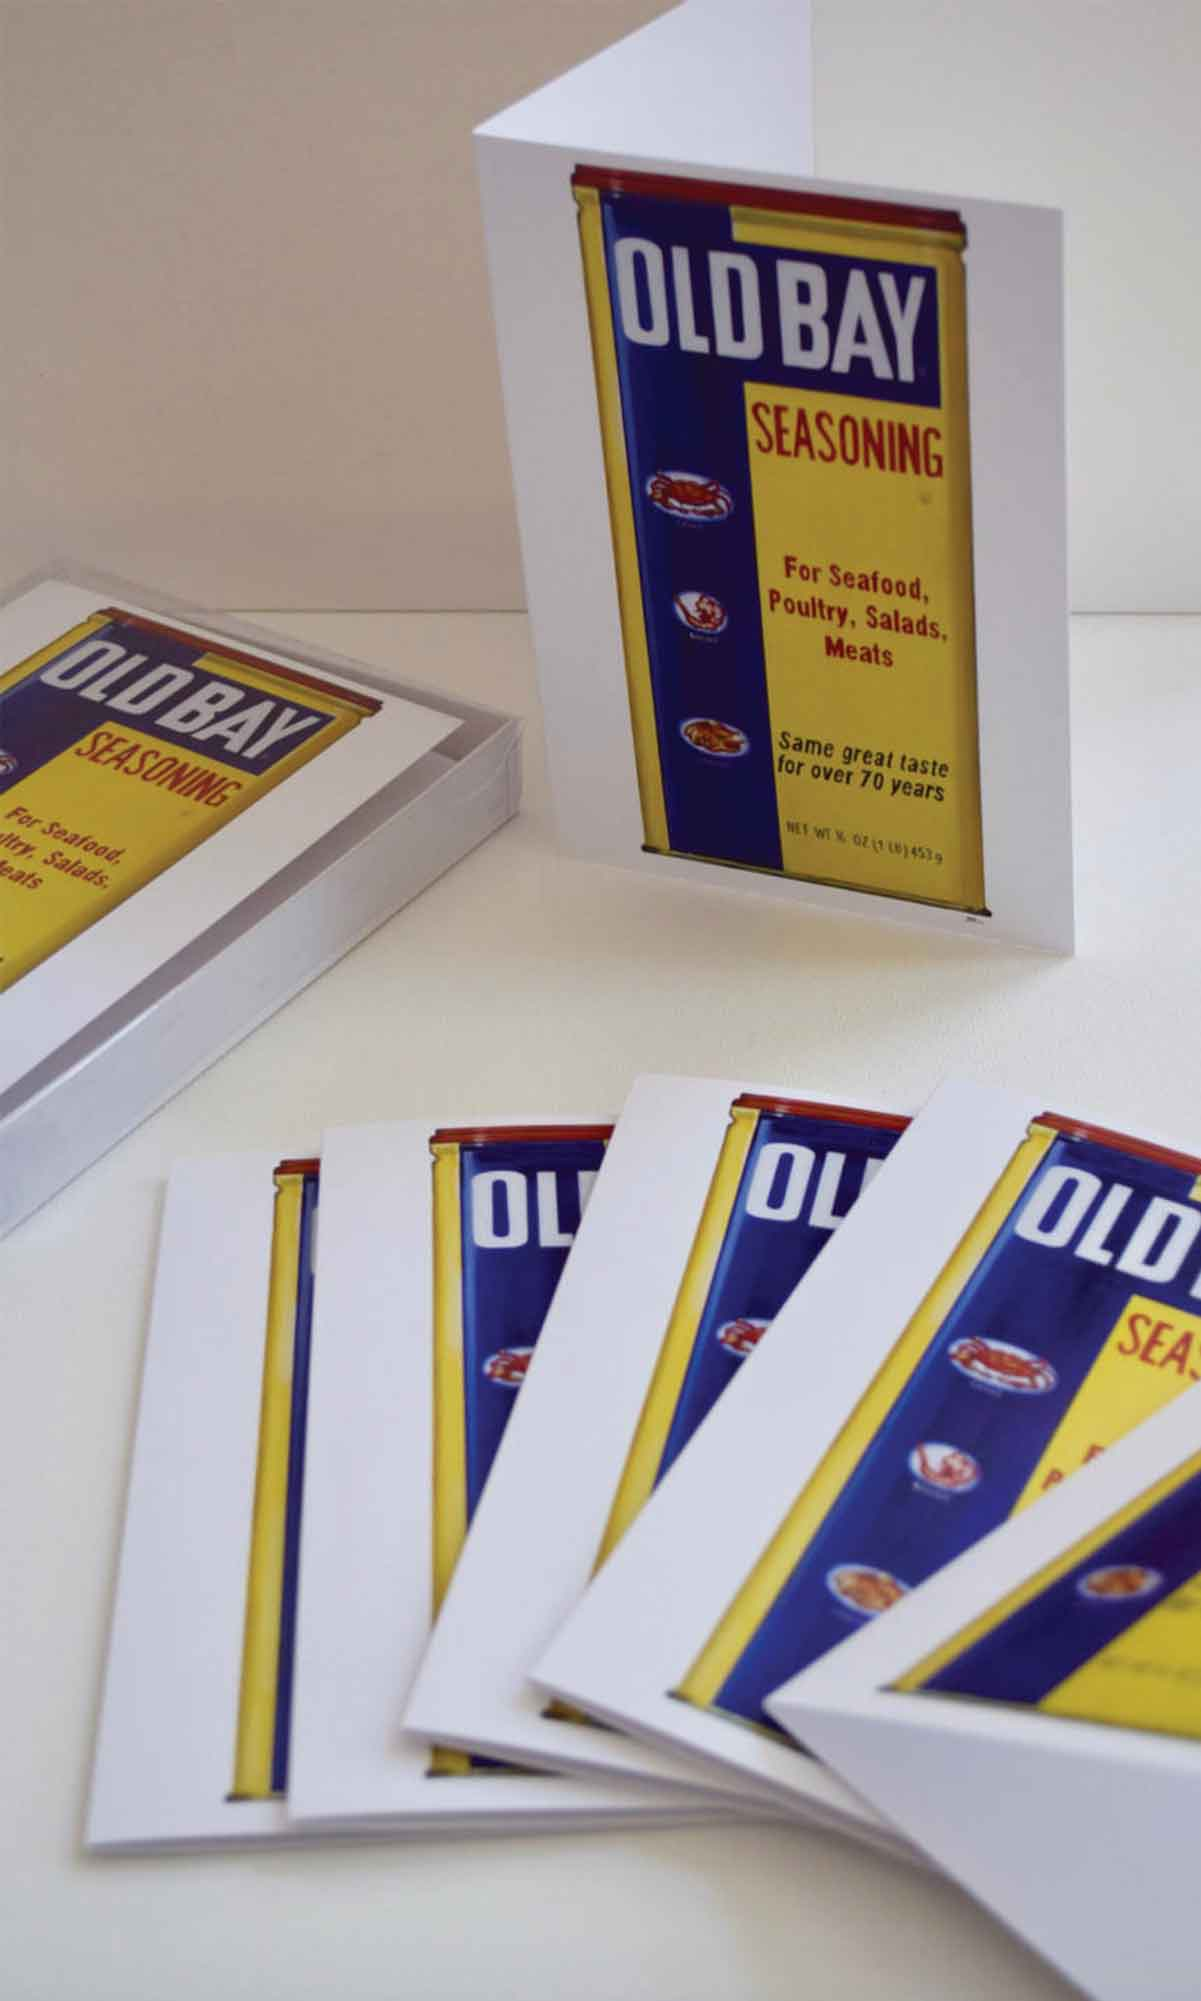 Old Bay Seasoning Stationary-Old Bay Stationary, Greeting Card, Cards, Old Bay, Annapolis, Baltimore, Crabs, Old Bay Seasoning